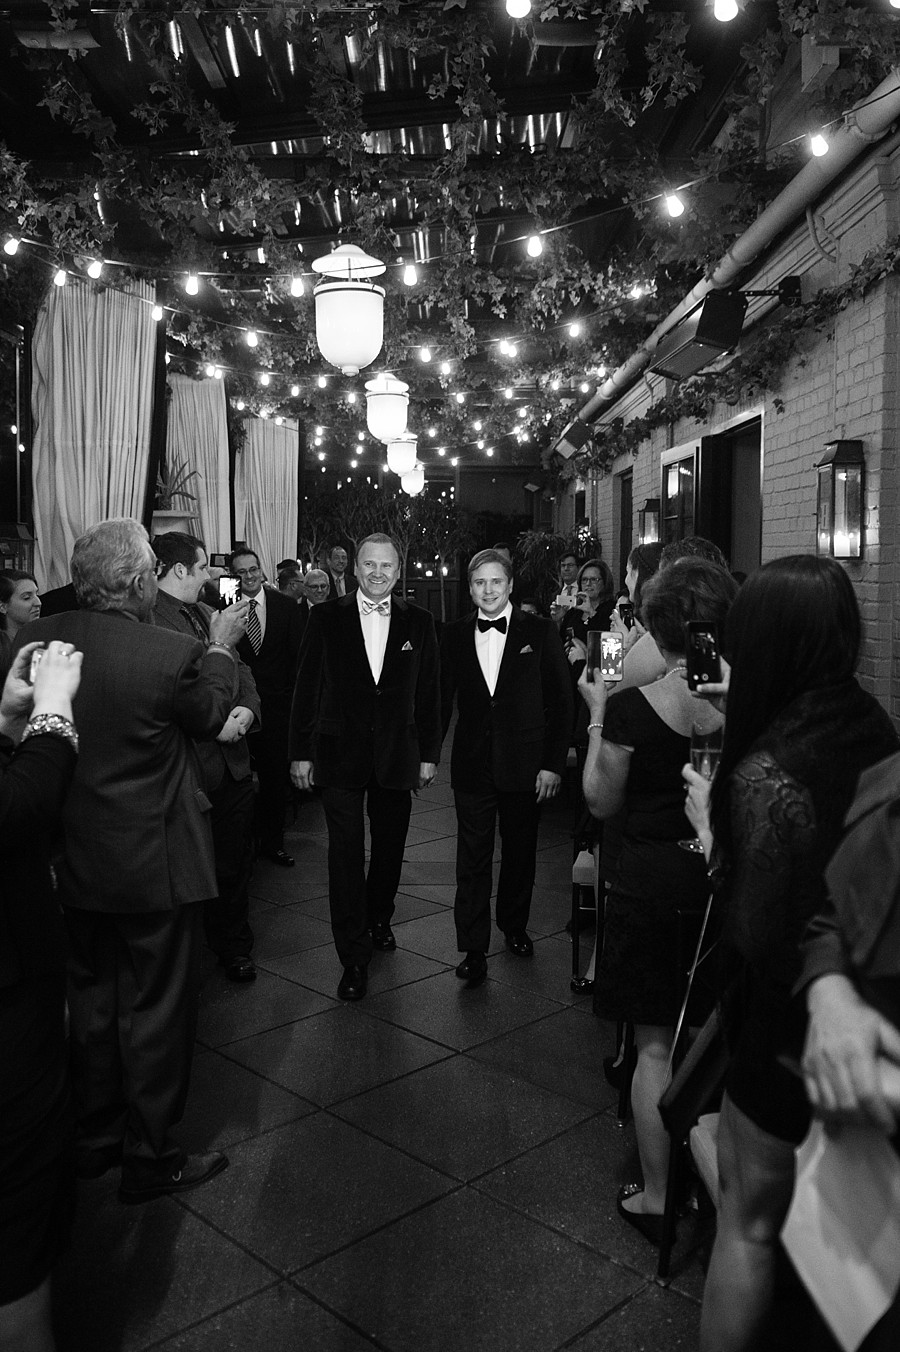 Gramercy_Park_Hotel_Wedding_NYC_FS_22.jpg